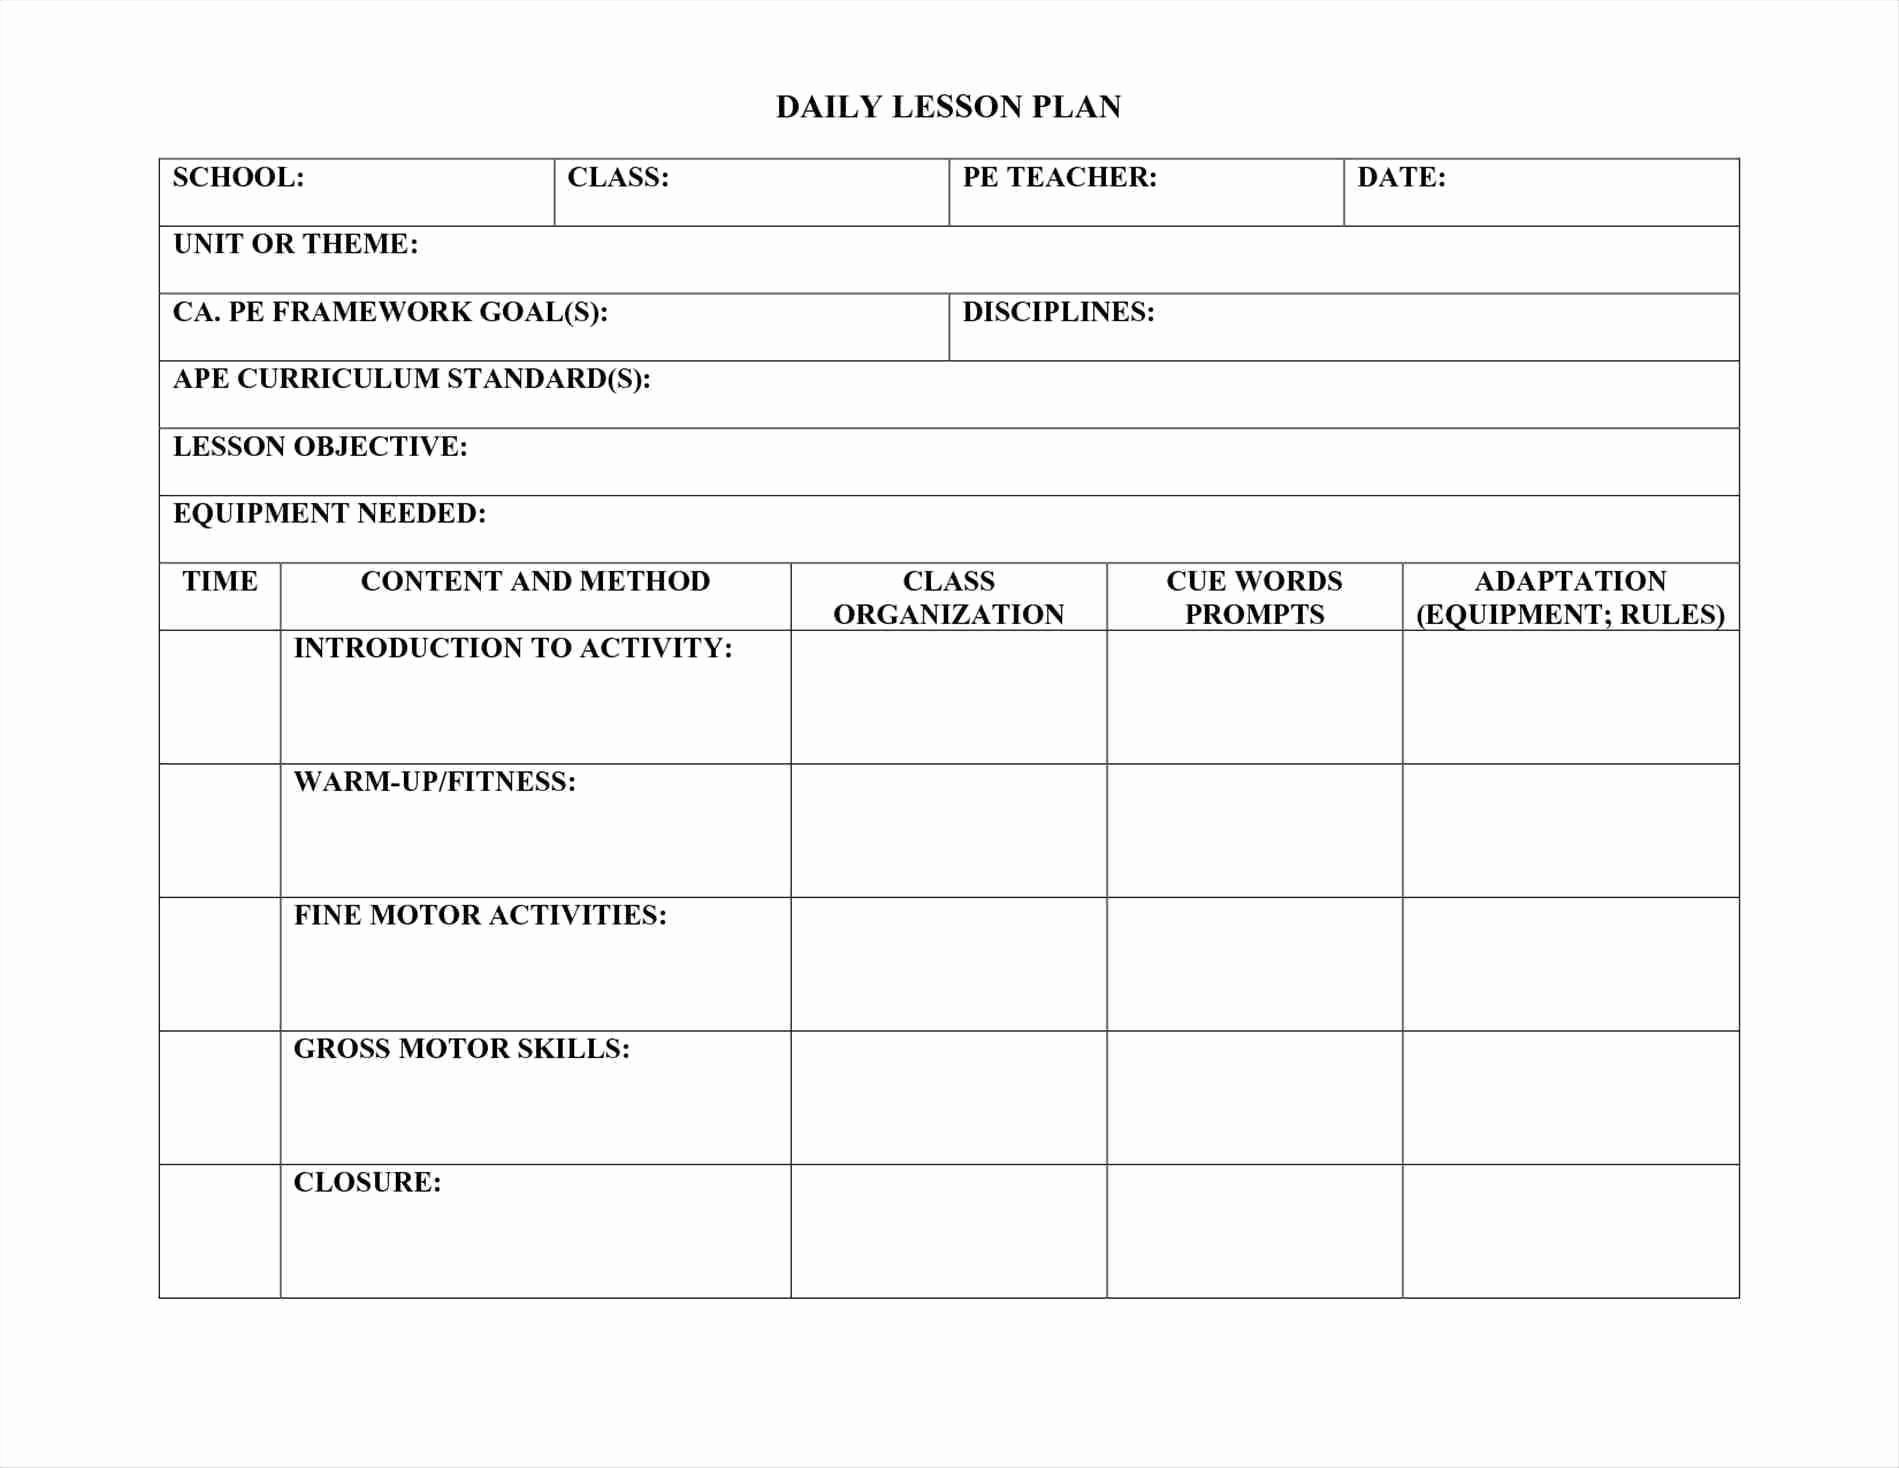 Weekly Lesson Plan Template Elementary Luxury Pin by Joanna Keysa On Free Tamplate